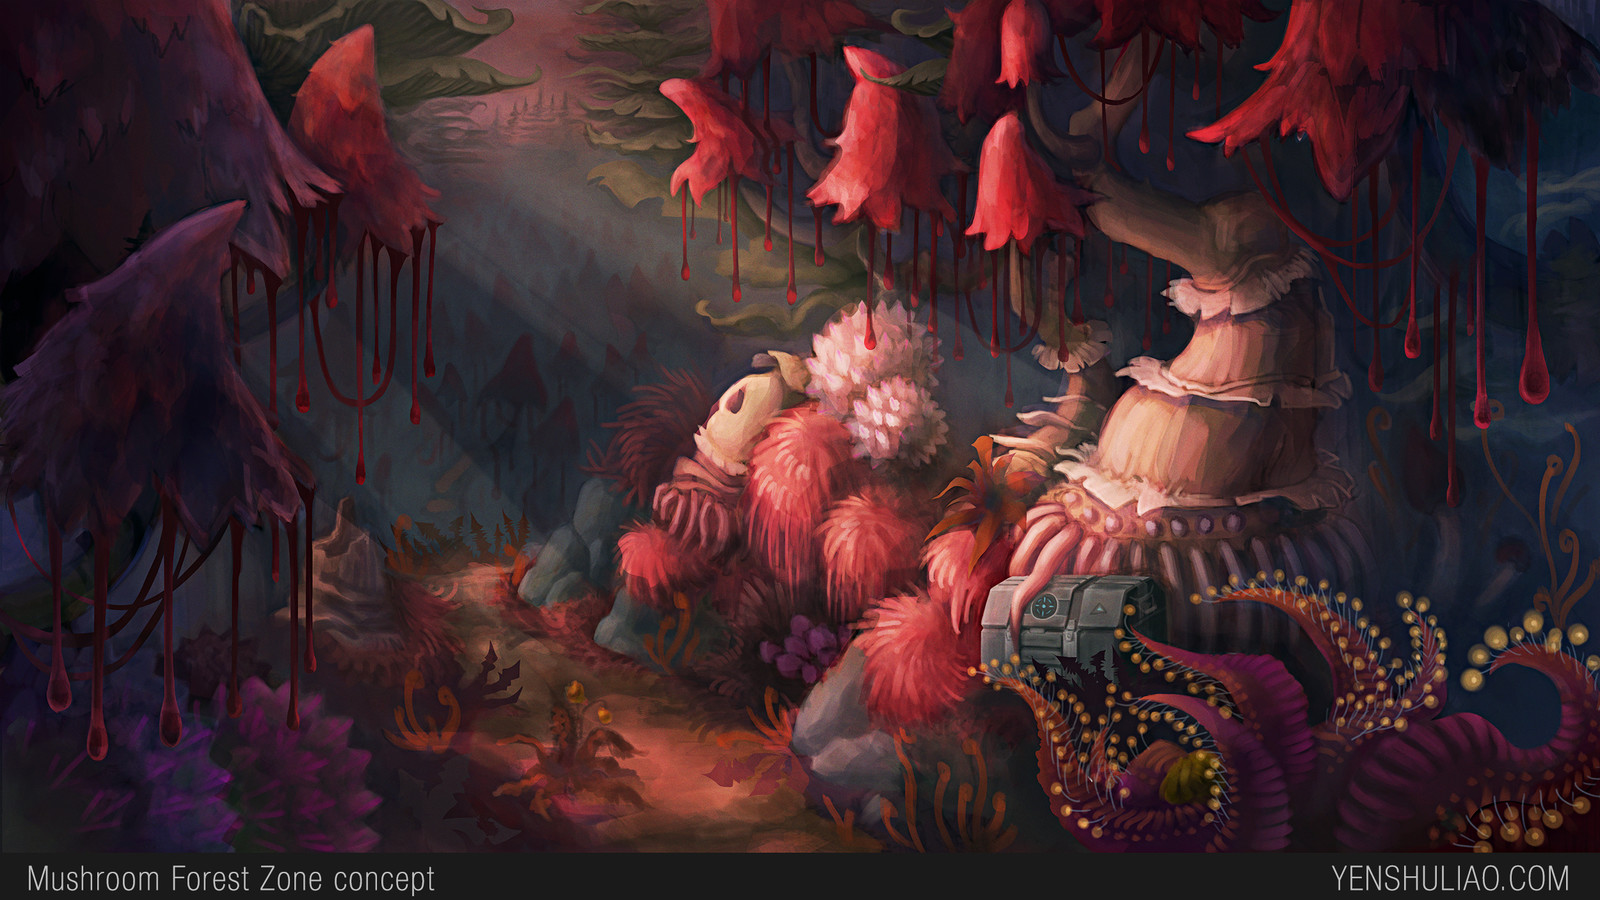 Mushroom Forest Environment Concept